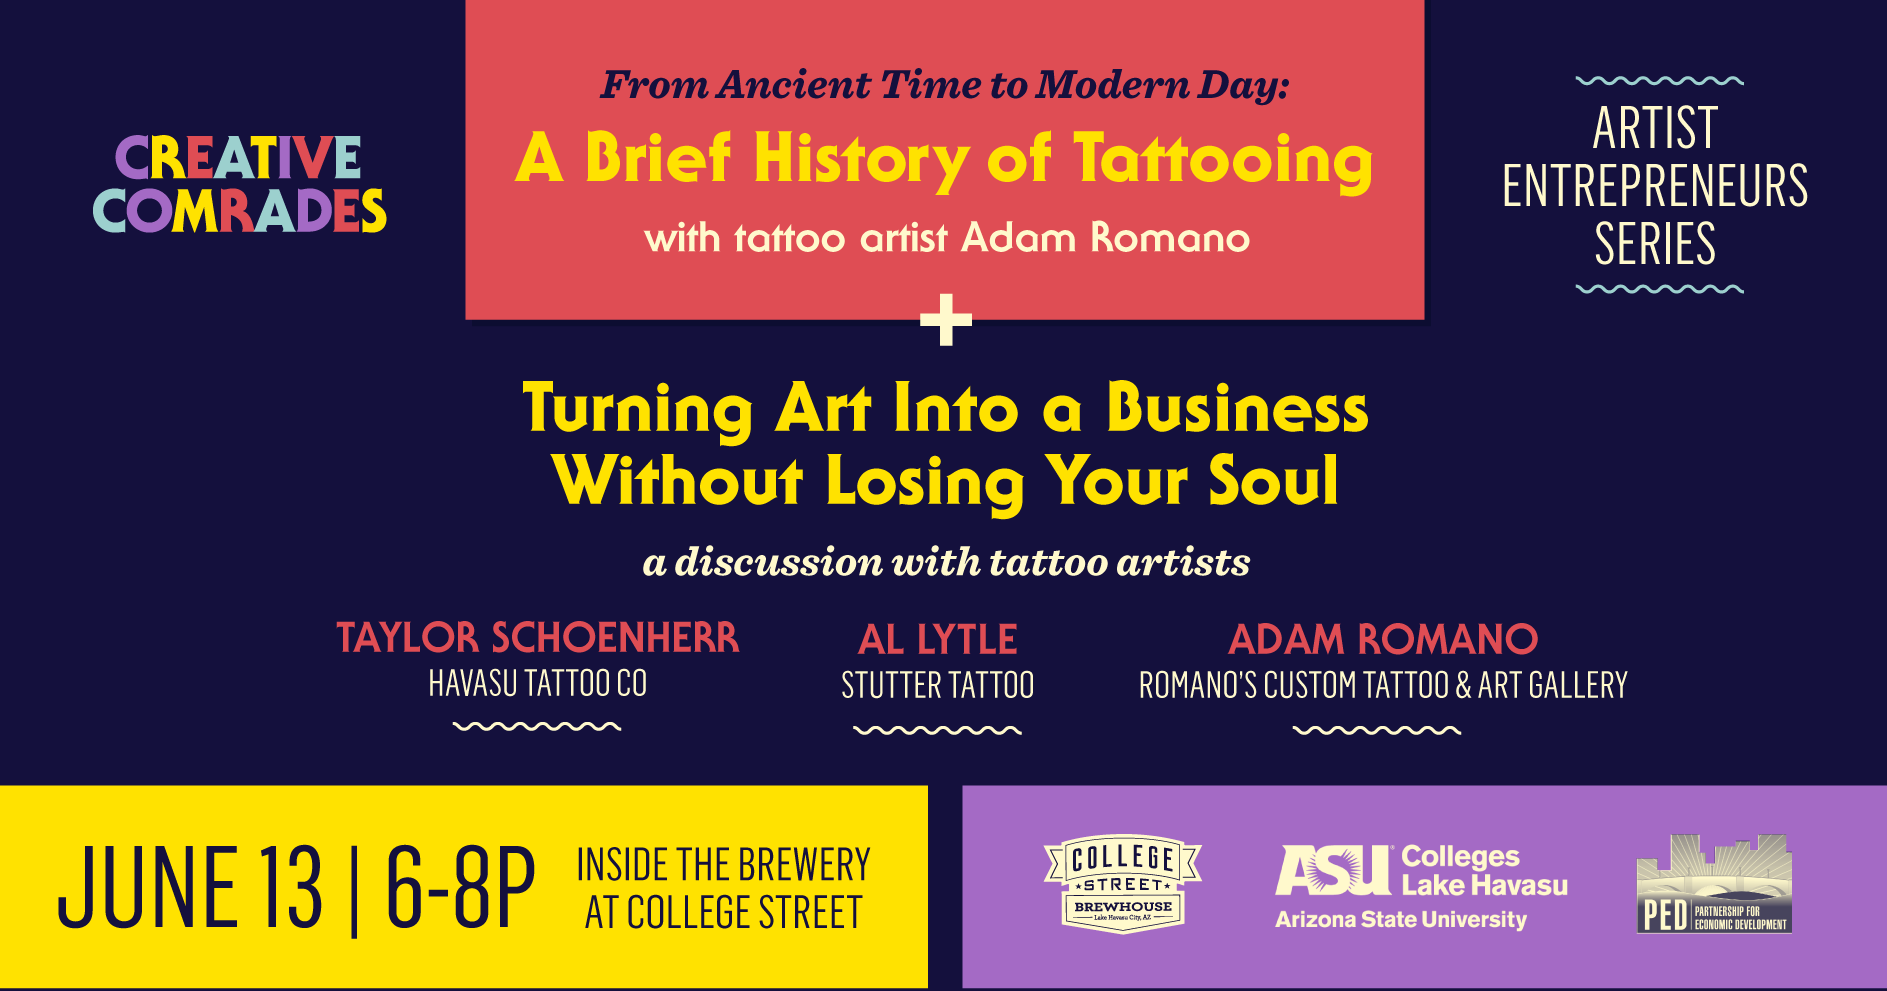 Creative Comrades | A Brief History of Tattooing & Turning Art Into a Business Without Losing Your Soul